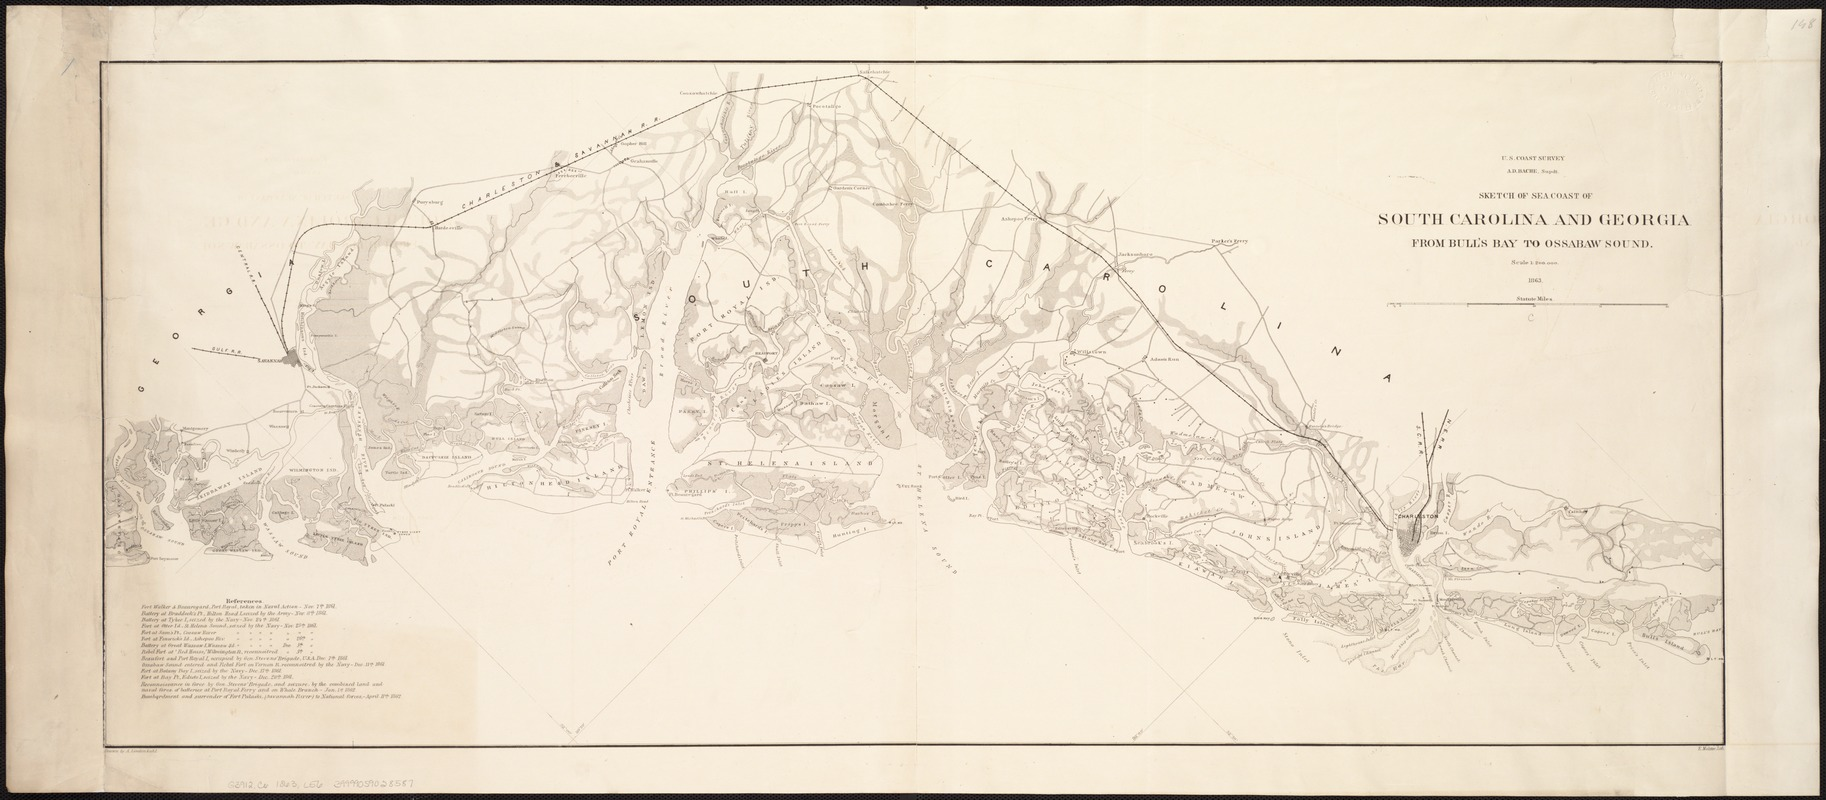 Sketch of sea coast of South Carolina and Georgia from Bull's Bay to Ossabaw Sound